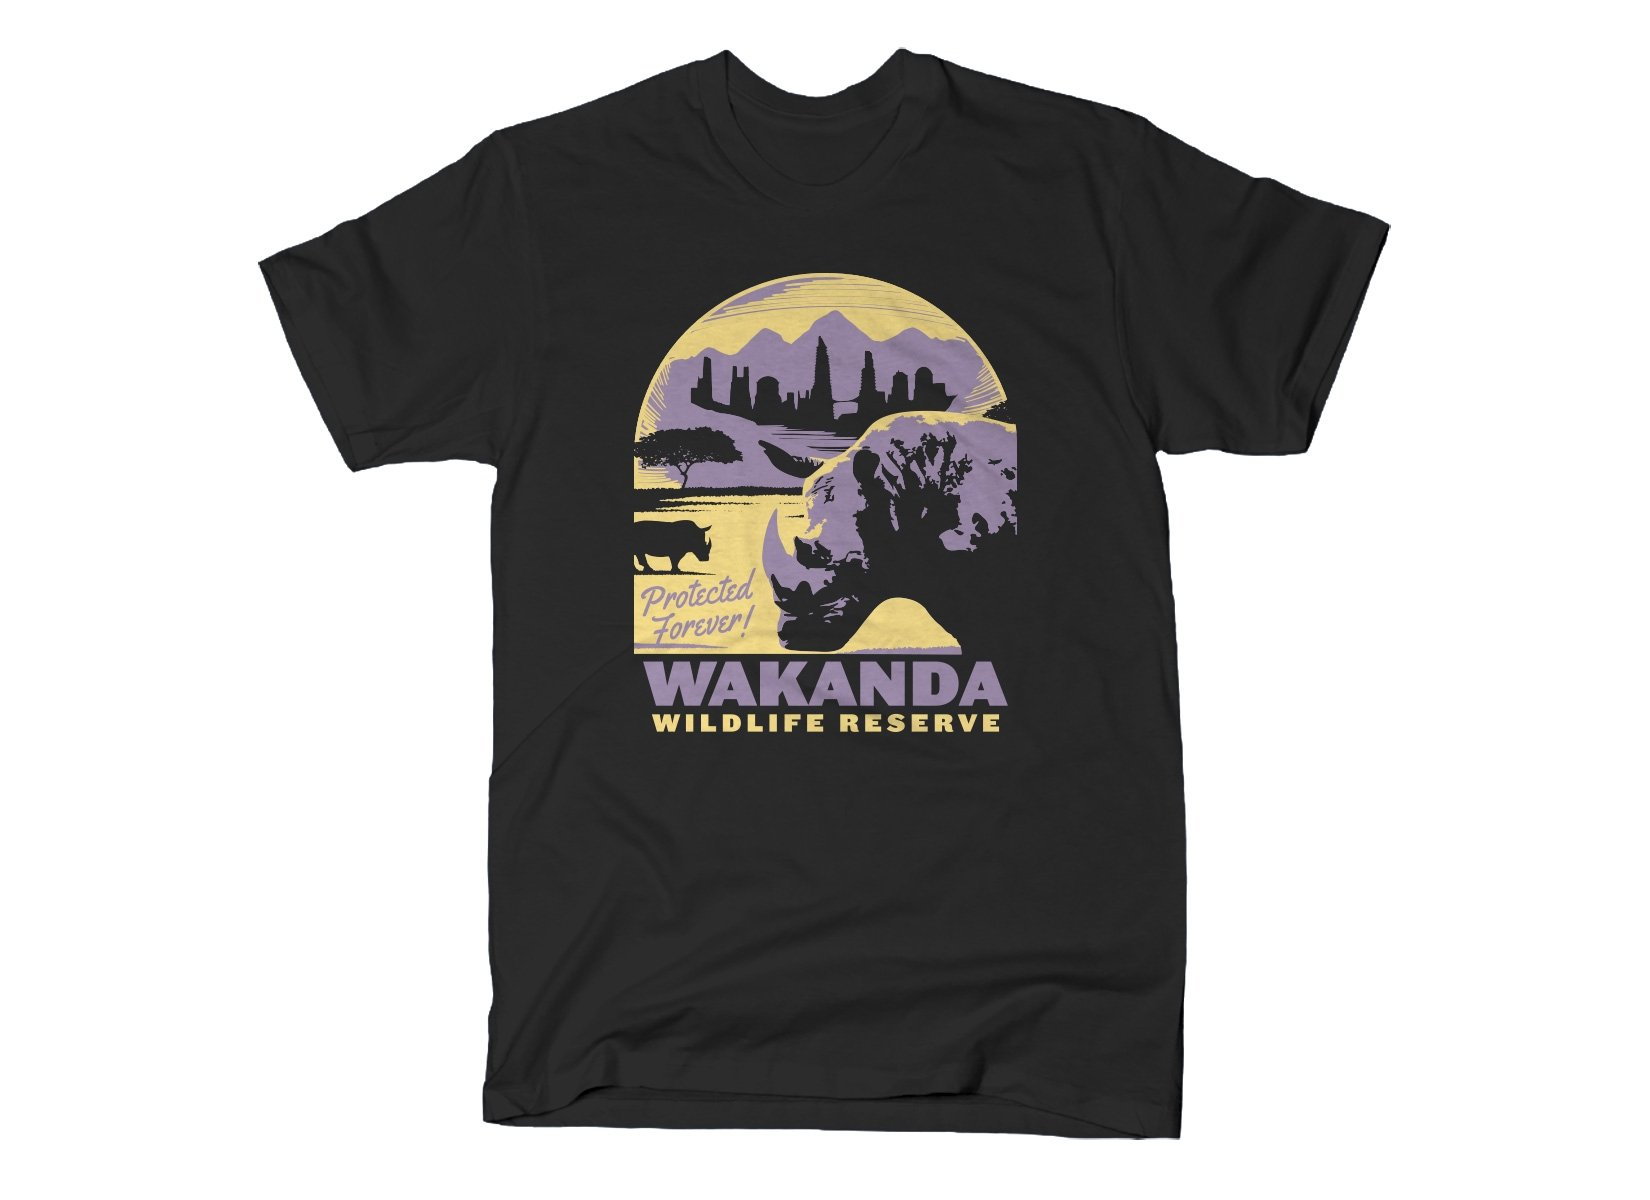 Wakanda Wildlife Reserve on Mens T-Shirt